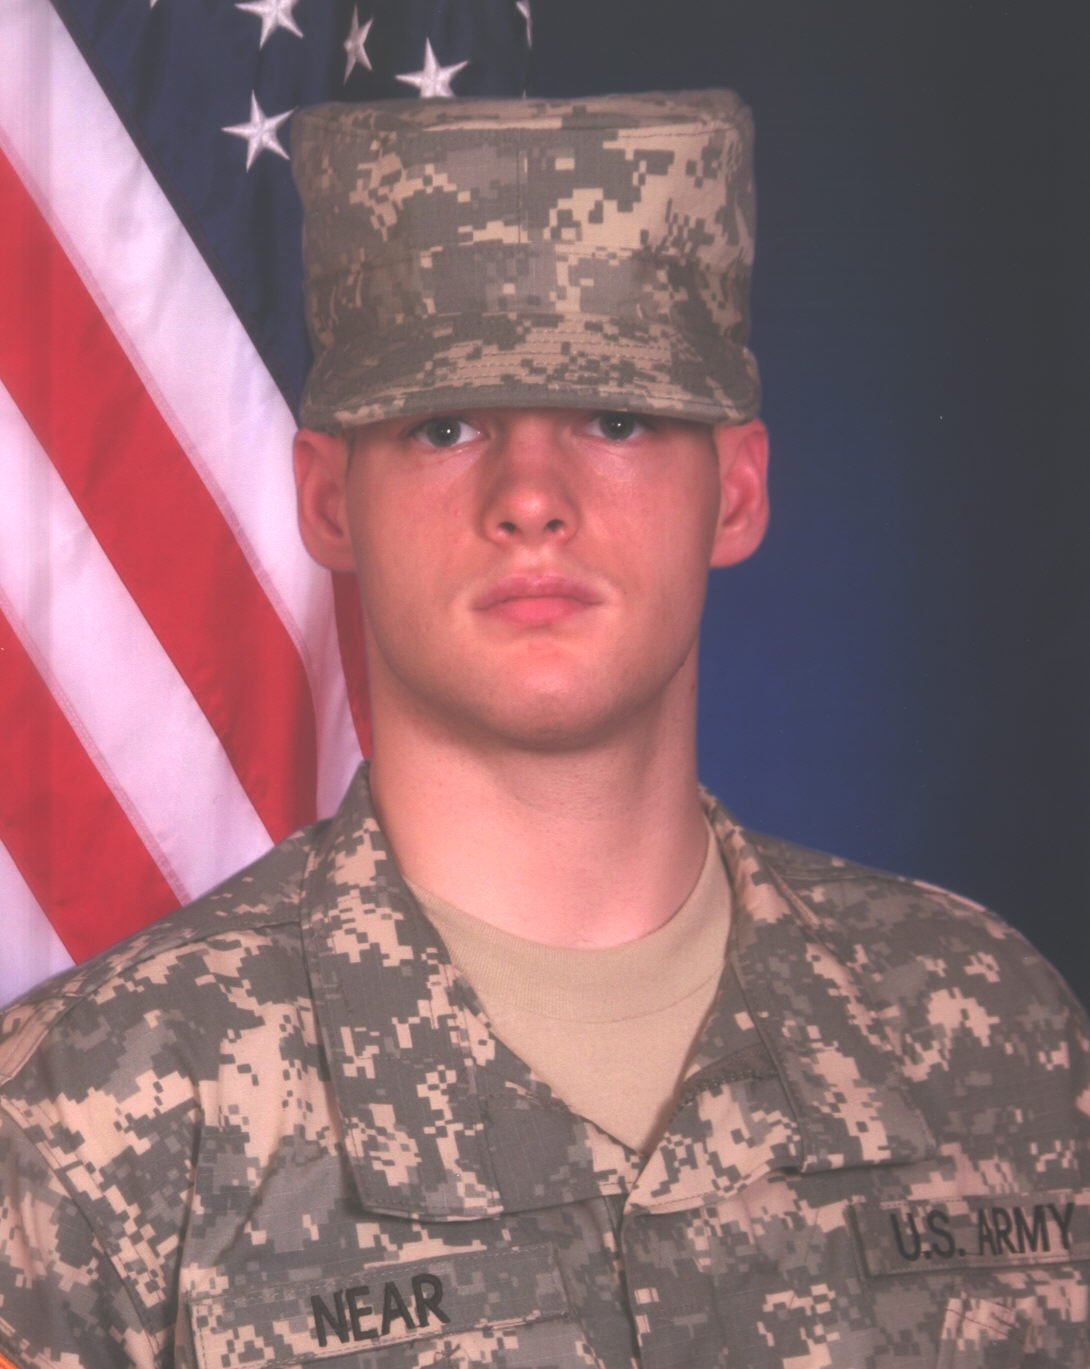 U.S. Army Pfc. Robert J. Near